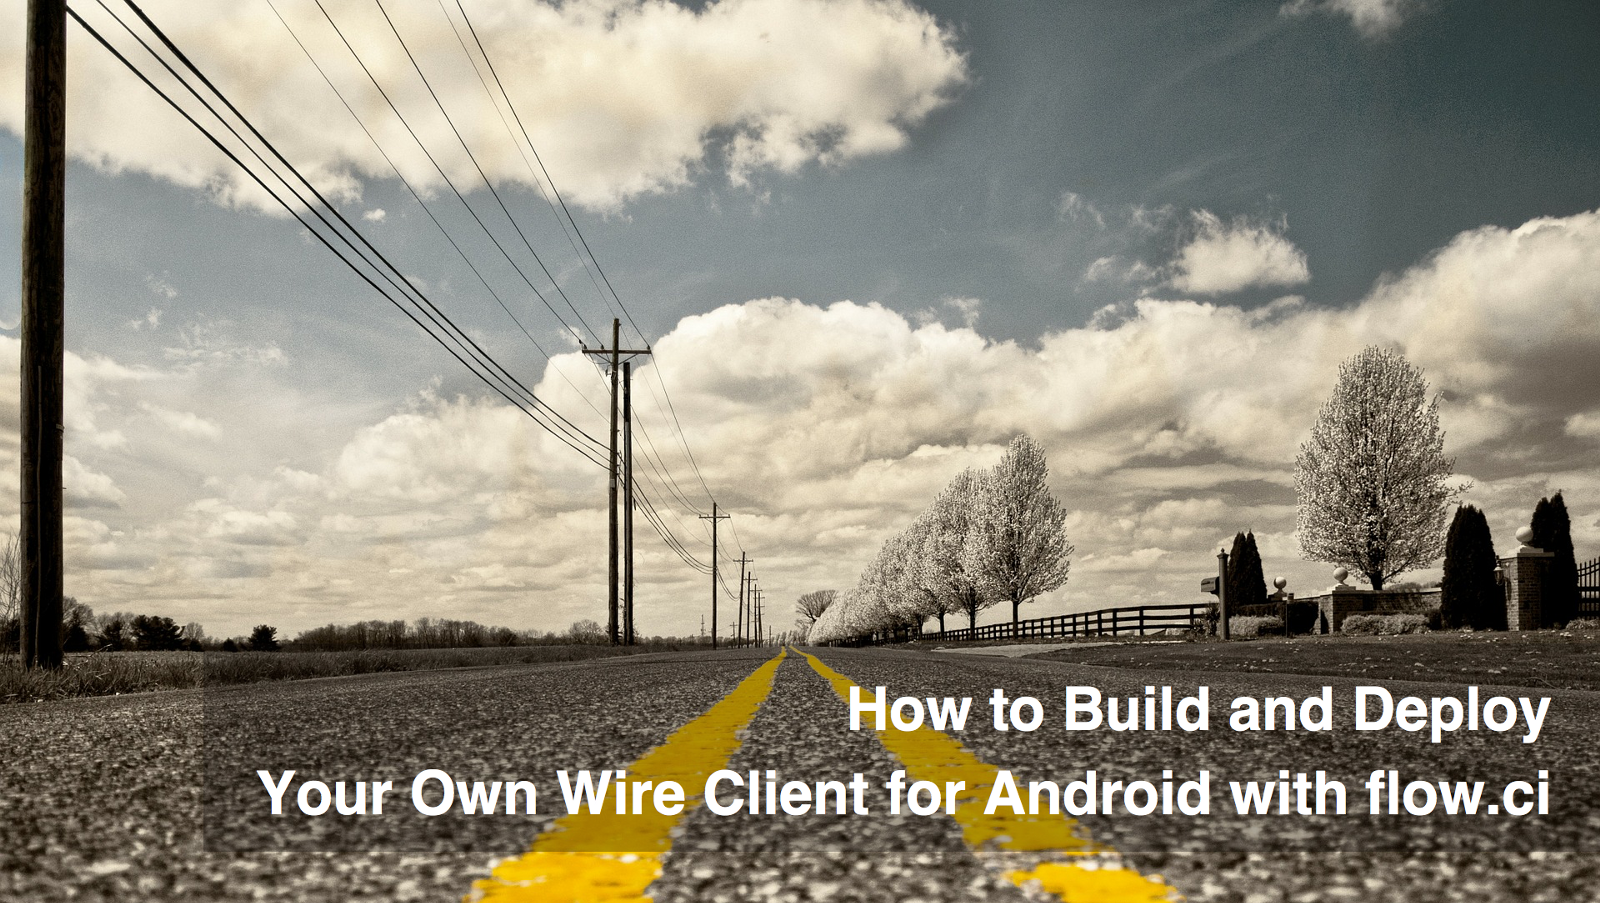 How to Build and Deploy Your Own Wire Client for Android with flow.ci